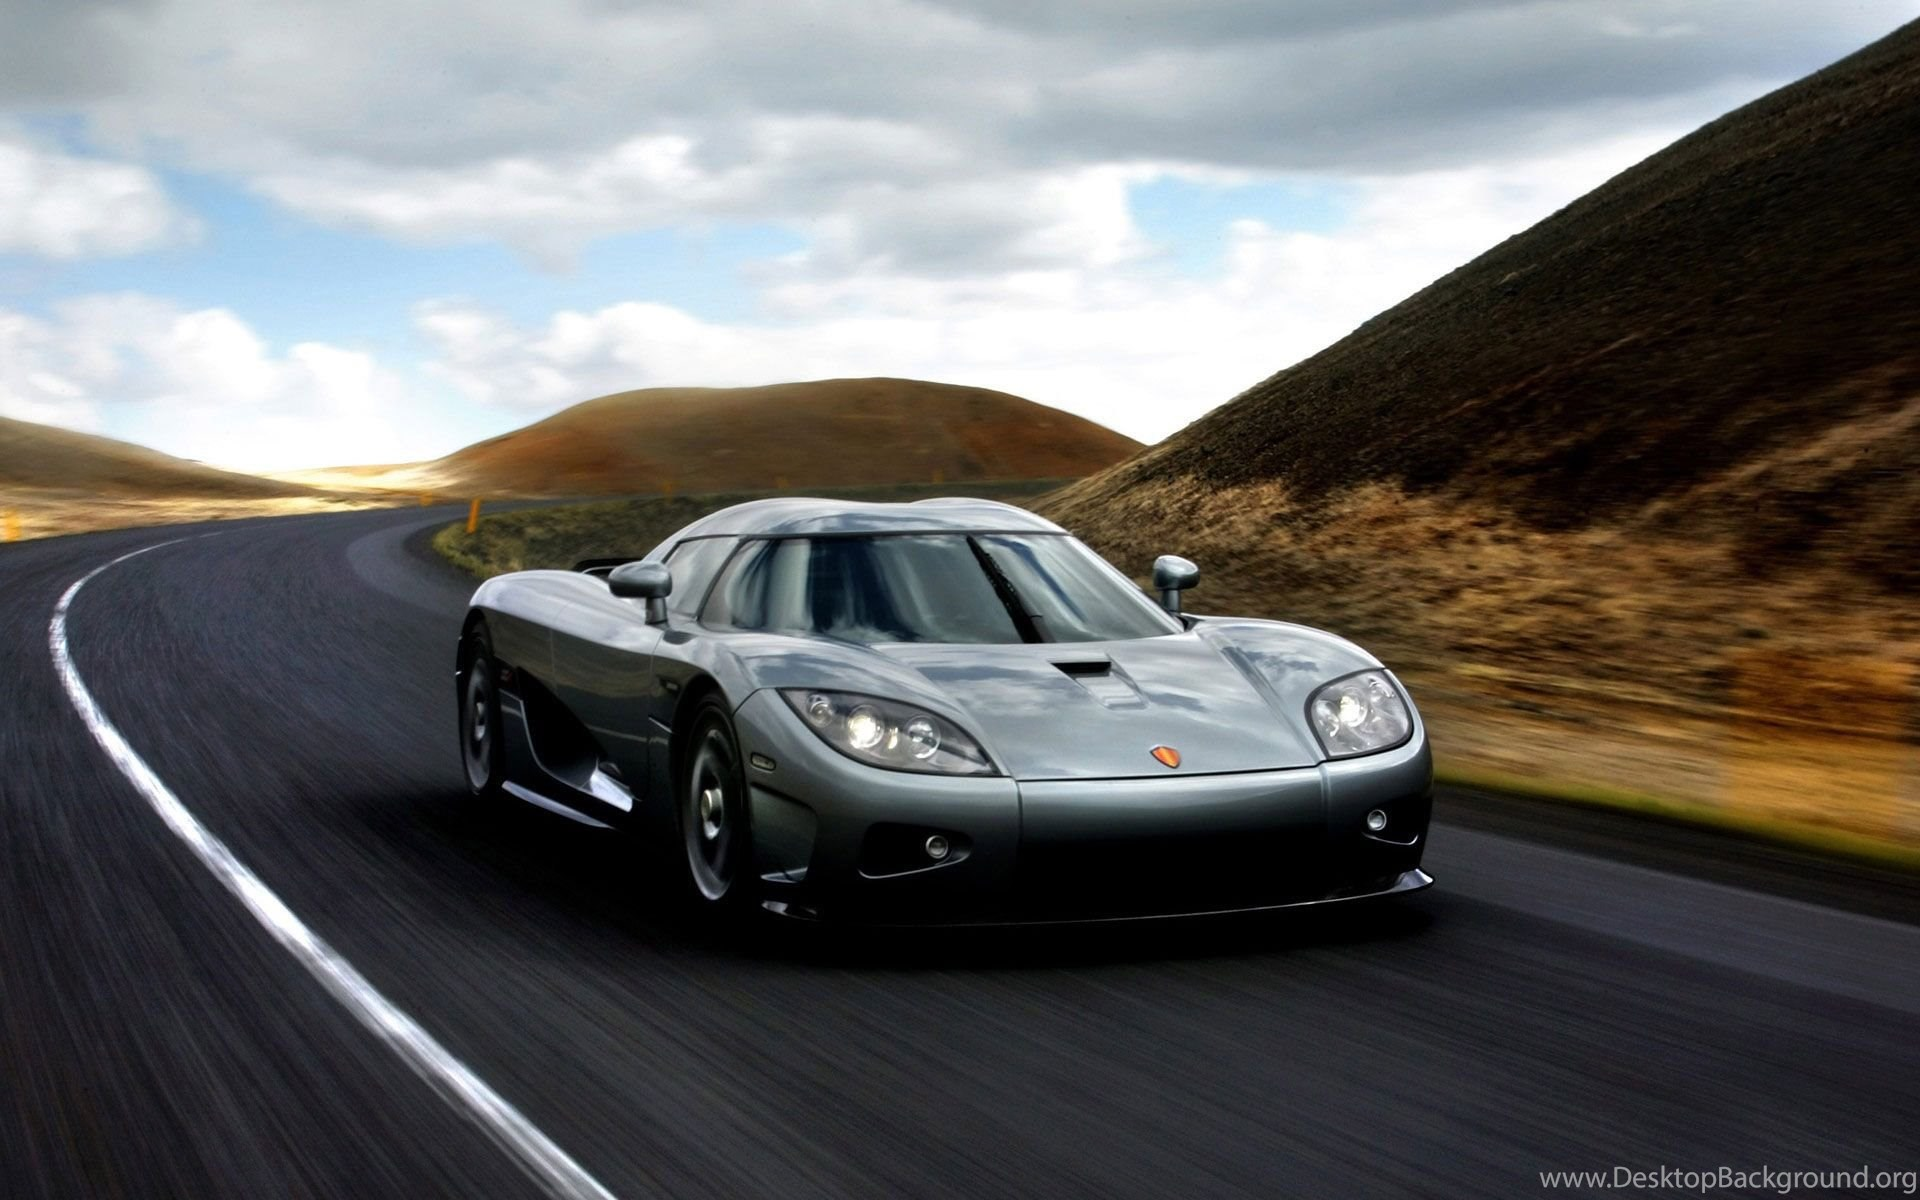 Koenigsegg Ccx Hd On Road Wallpapers Jpg Desktop Background